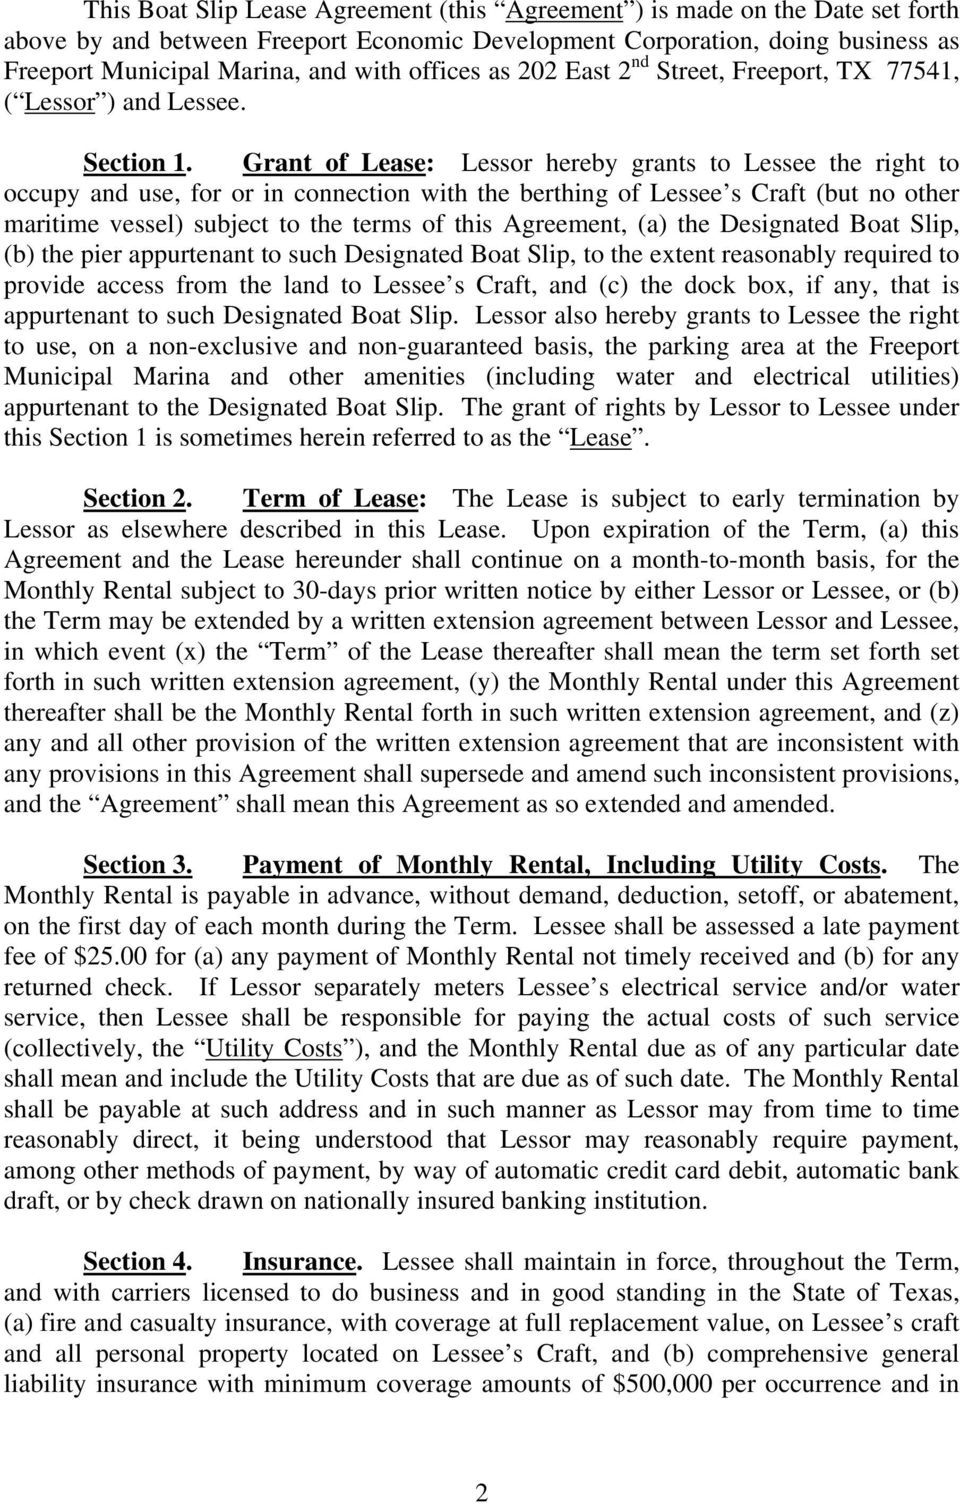 Grant of Lease: Lessor hereby grants to Lessee the right to occupy and use, for or in connection with the berthing of Lessee s Craft (but no other maritime vessel) subject to the terms of this